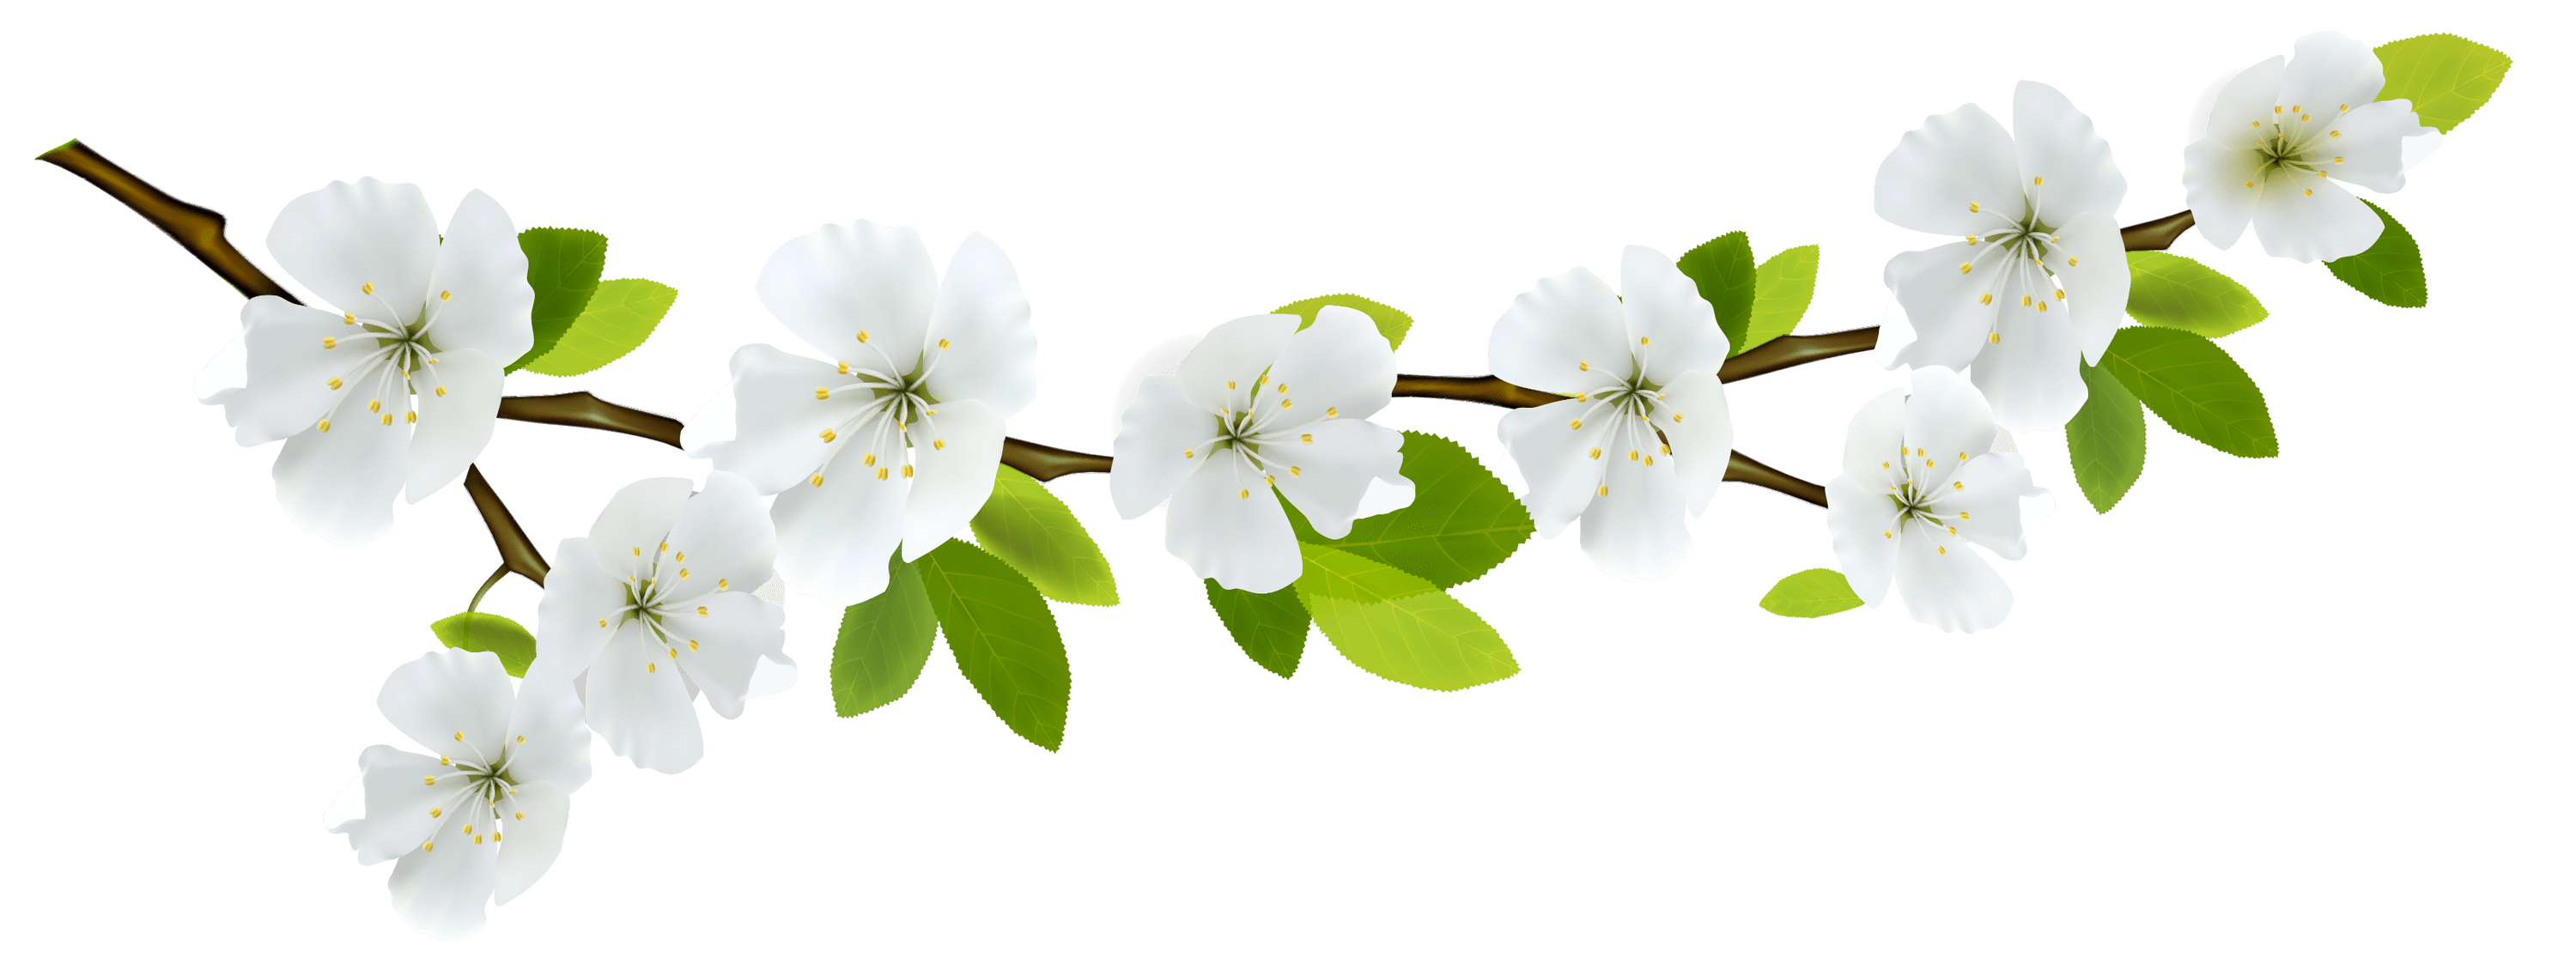 Download spring free transparent. White flower png